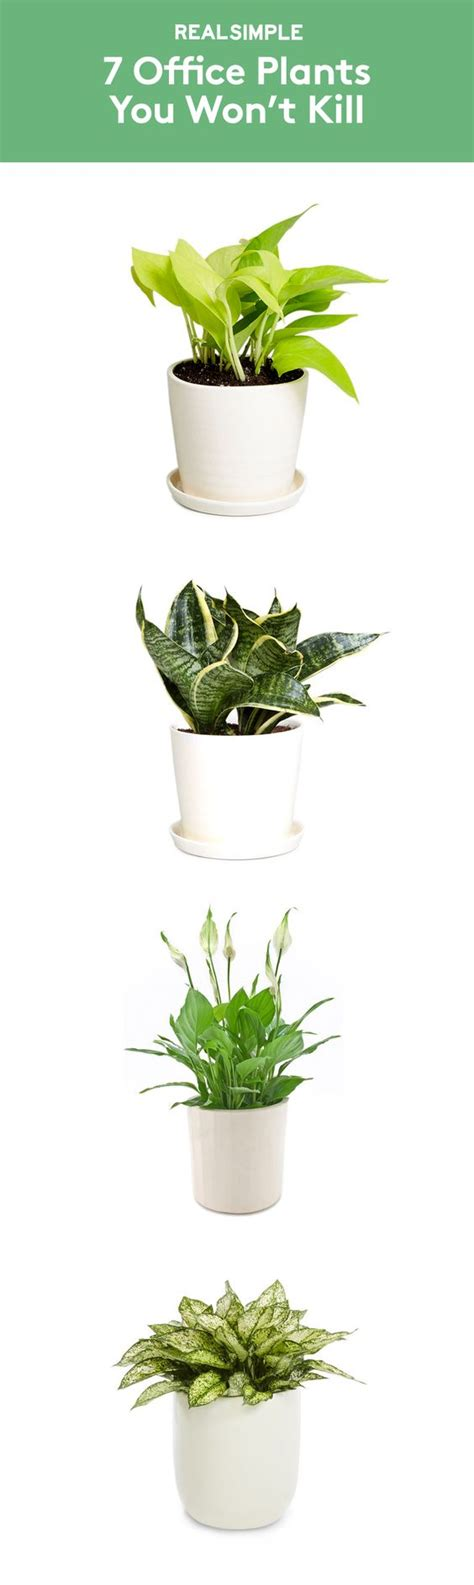 best office plant 7 office plants you won t kill kantoren planten en hangende ladder